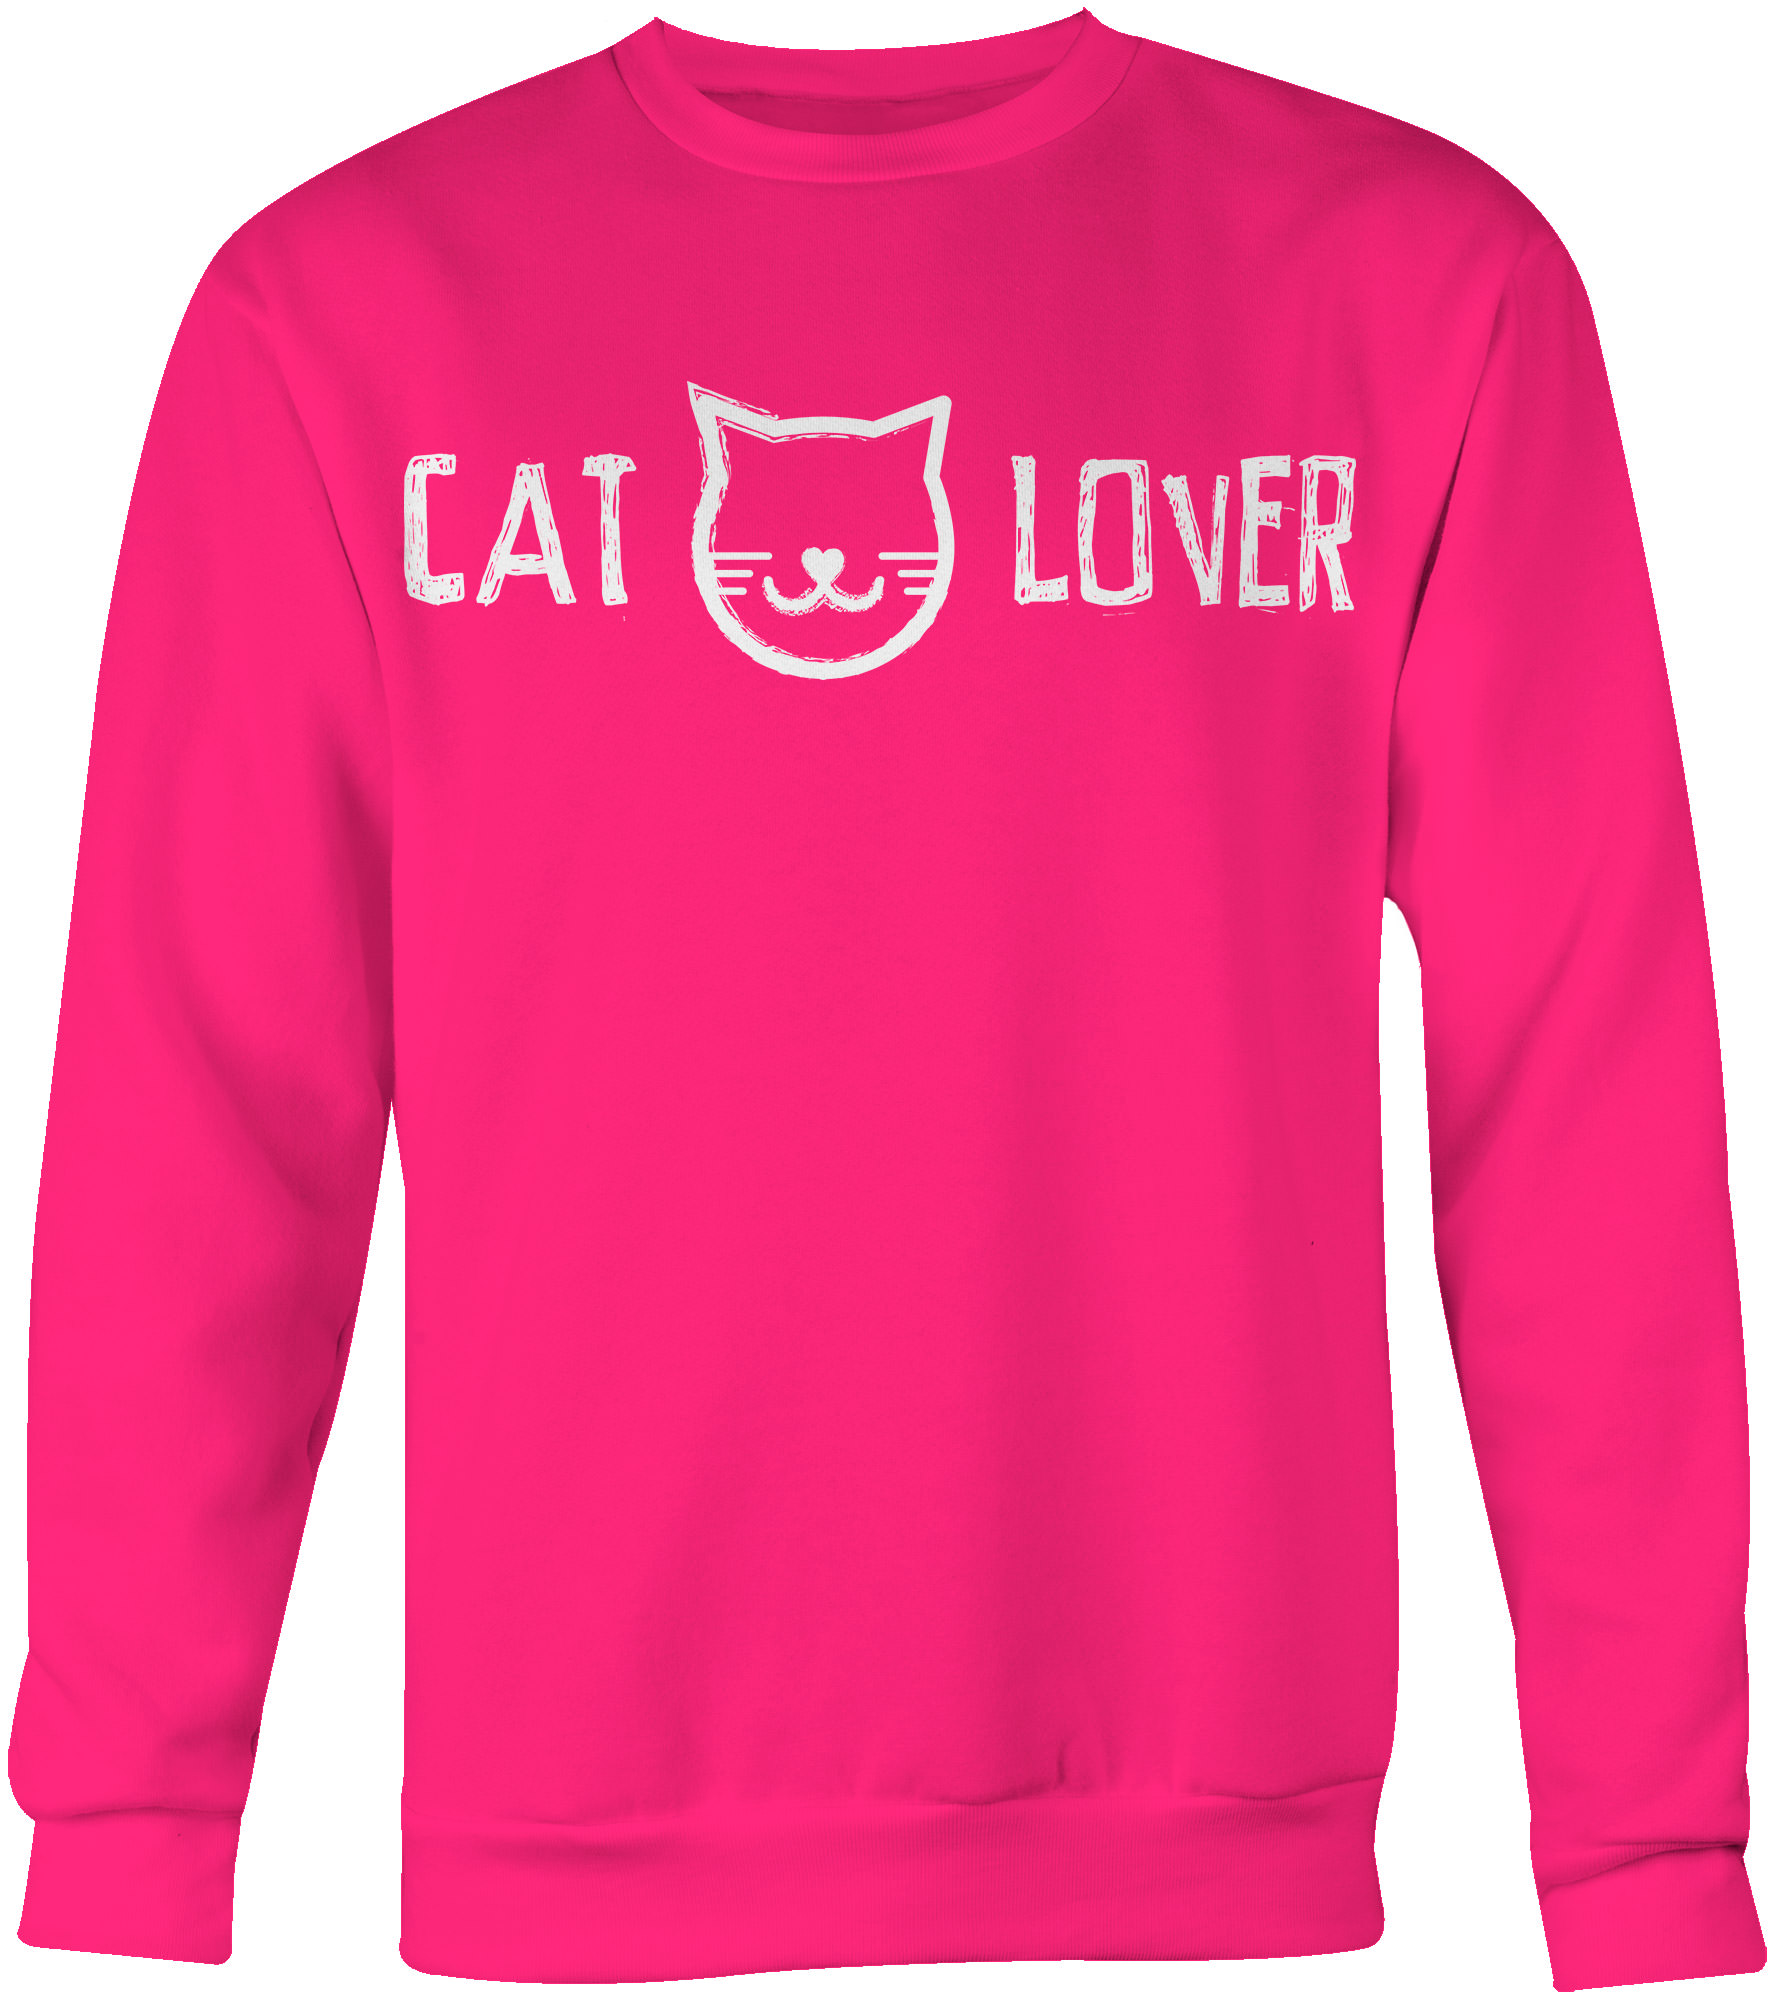 Cat Lover Crew Neck Sweatshirt - iHeartCats.com